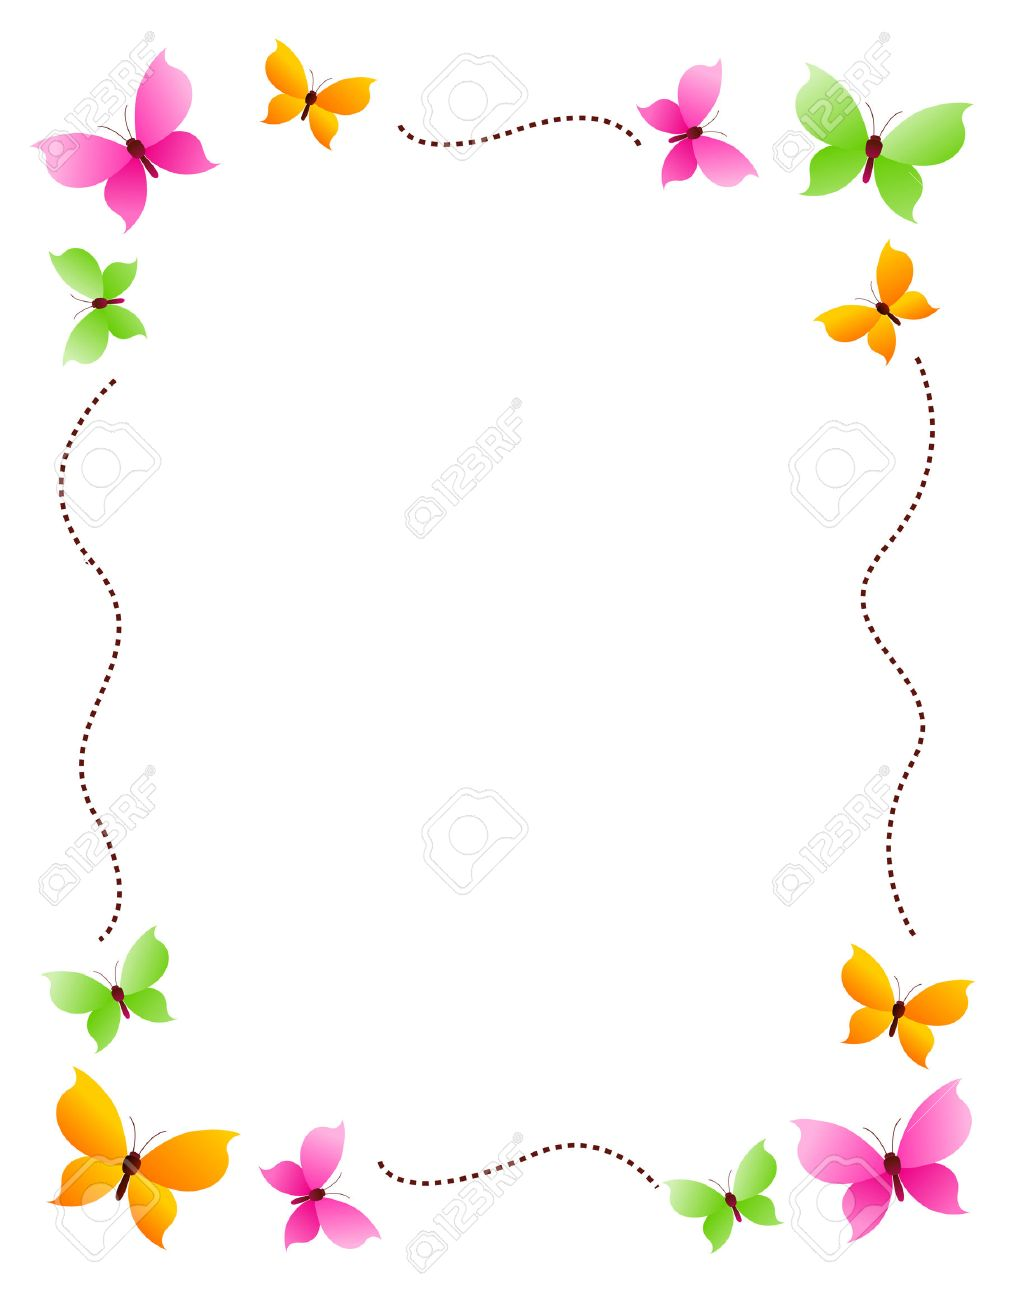 Butterfly Frame With Colorful Butterflies On Four Corners Royalty ...